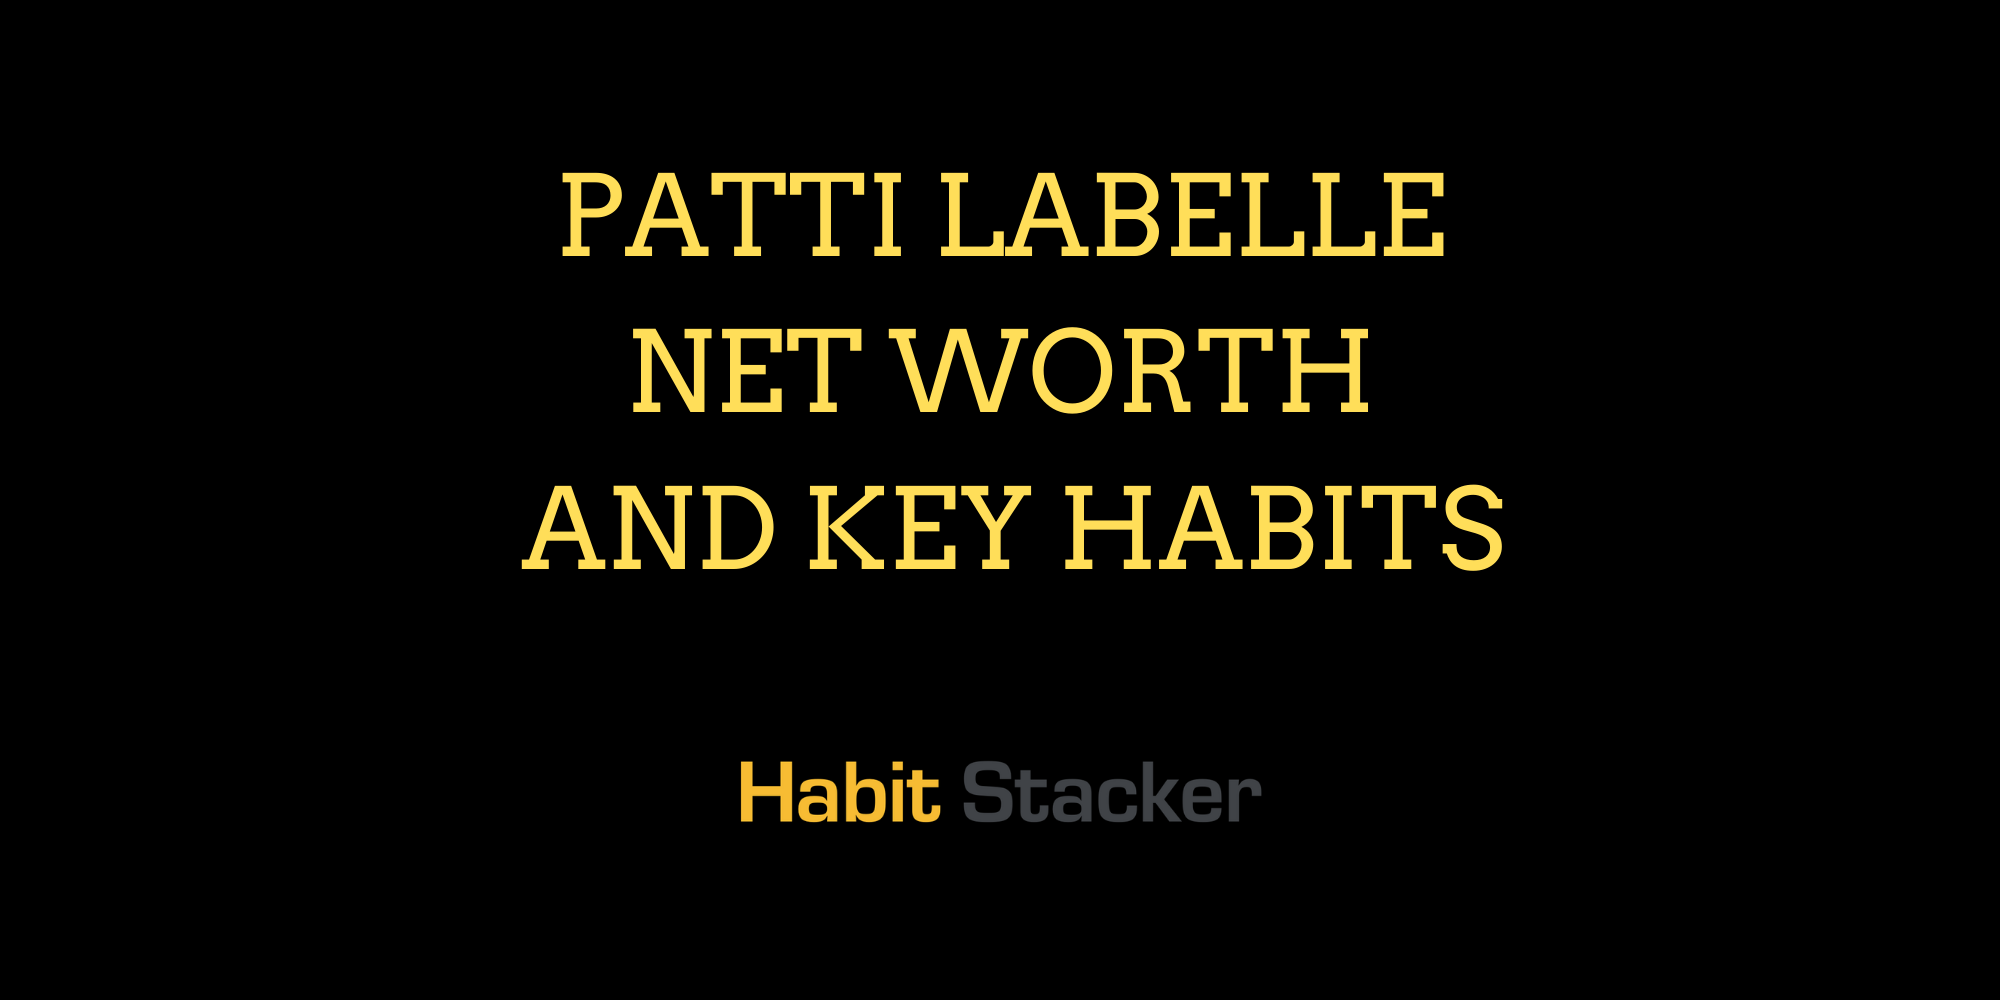 Patti LaBelle Net Worth and Key Habits